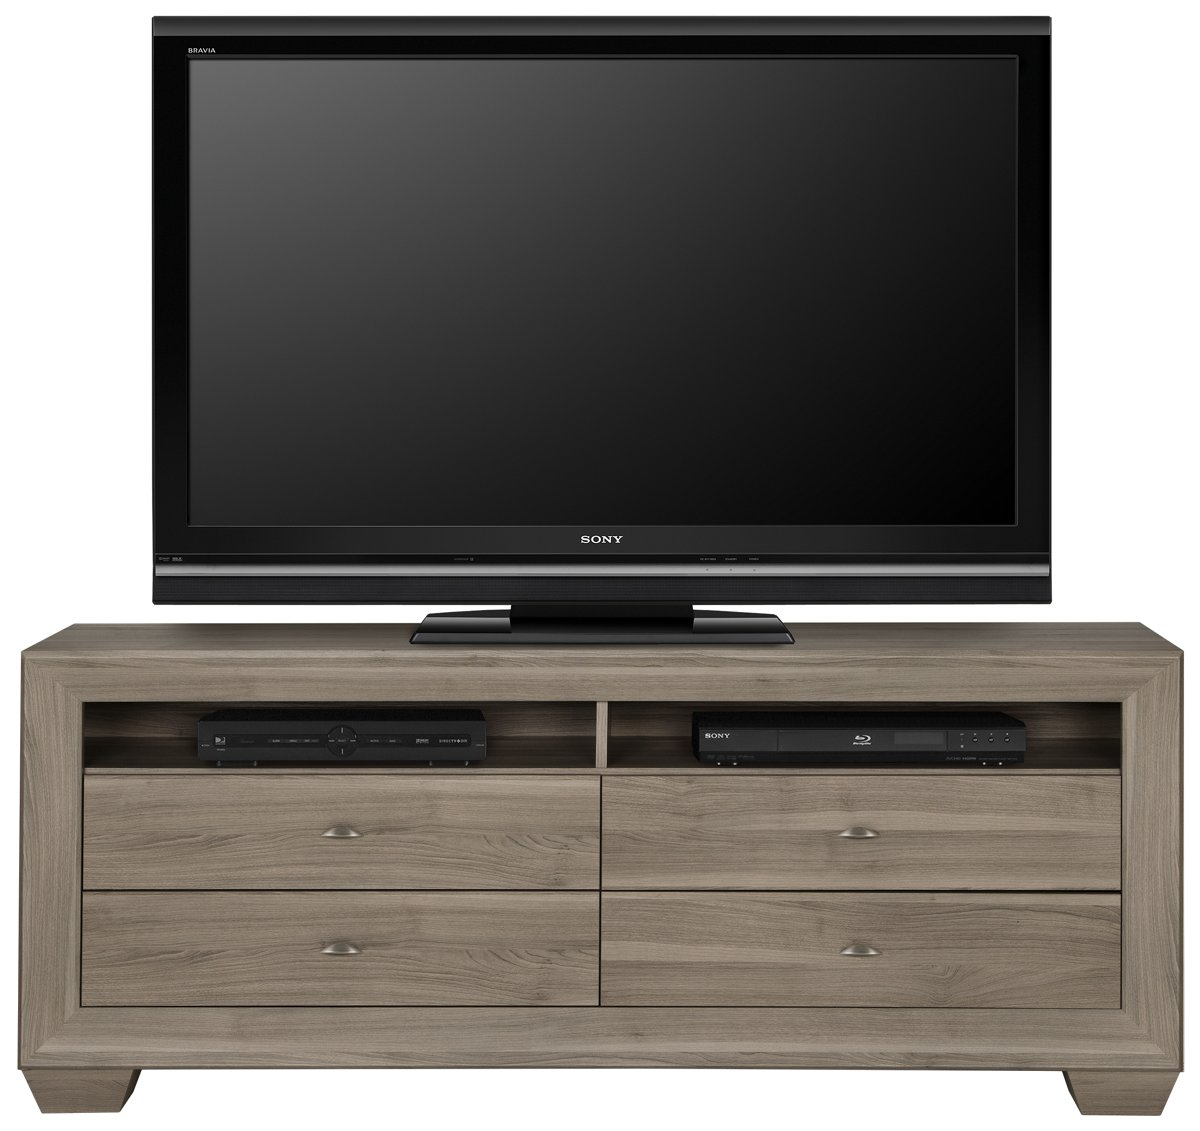 Image result for TV Stand